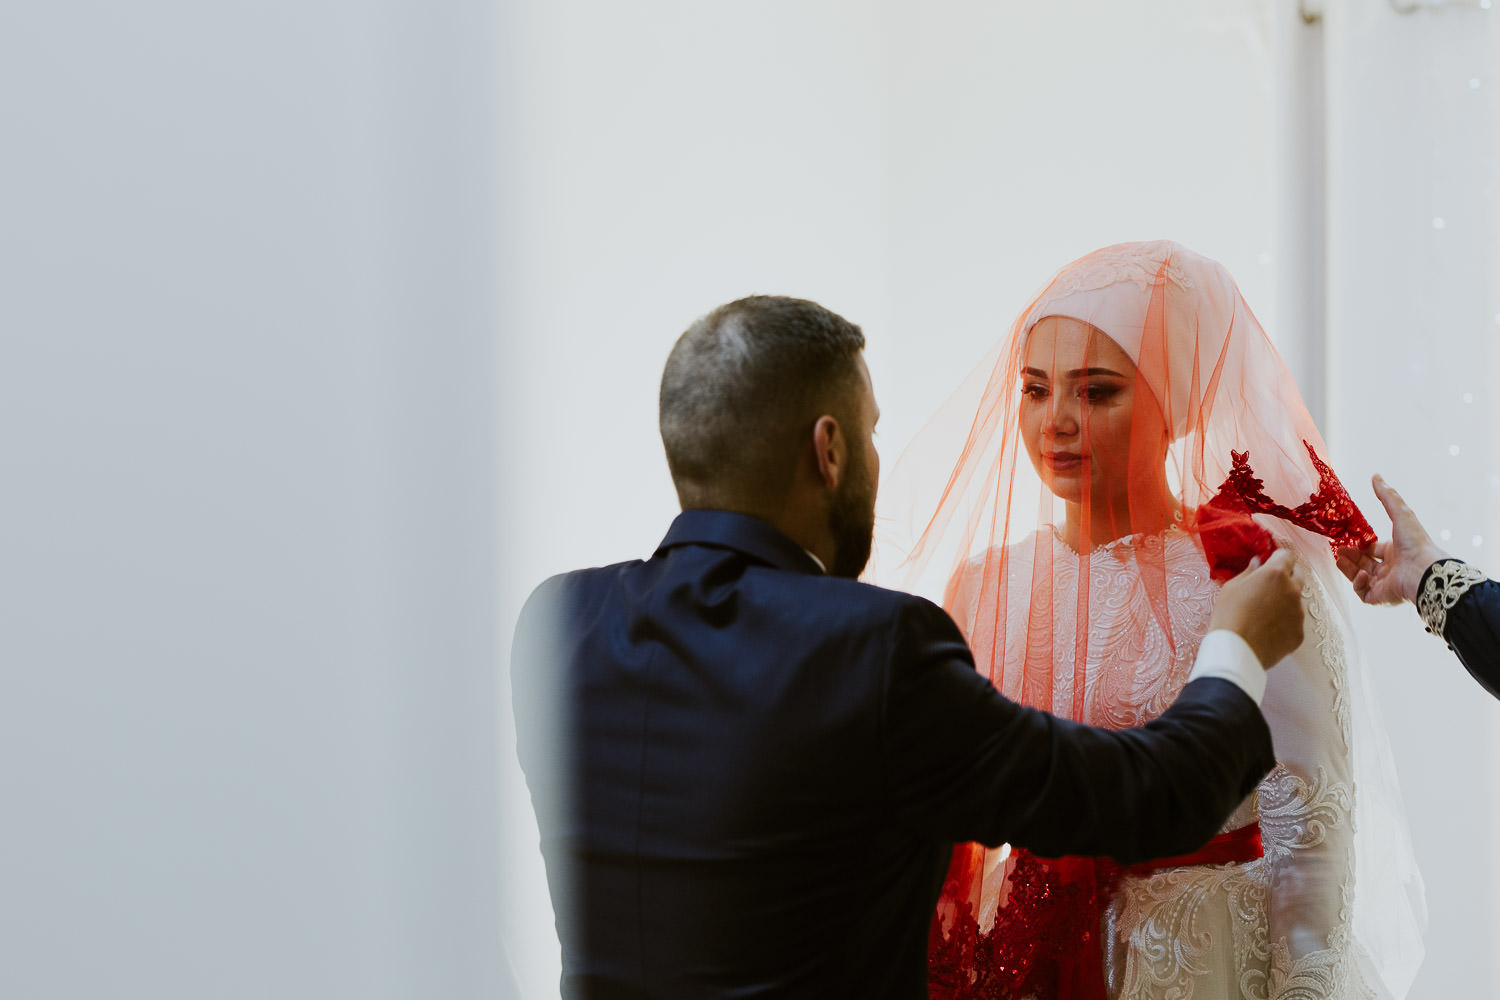 Brother covering her sister the bride with traditional red veil